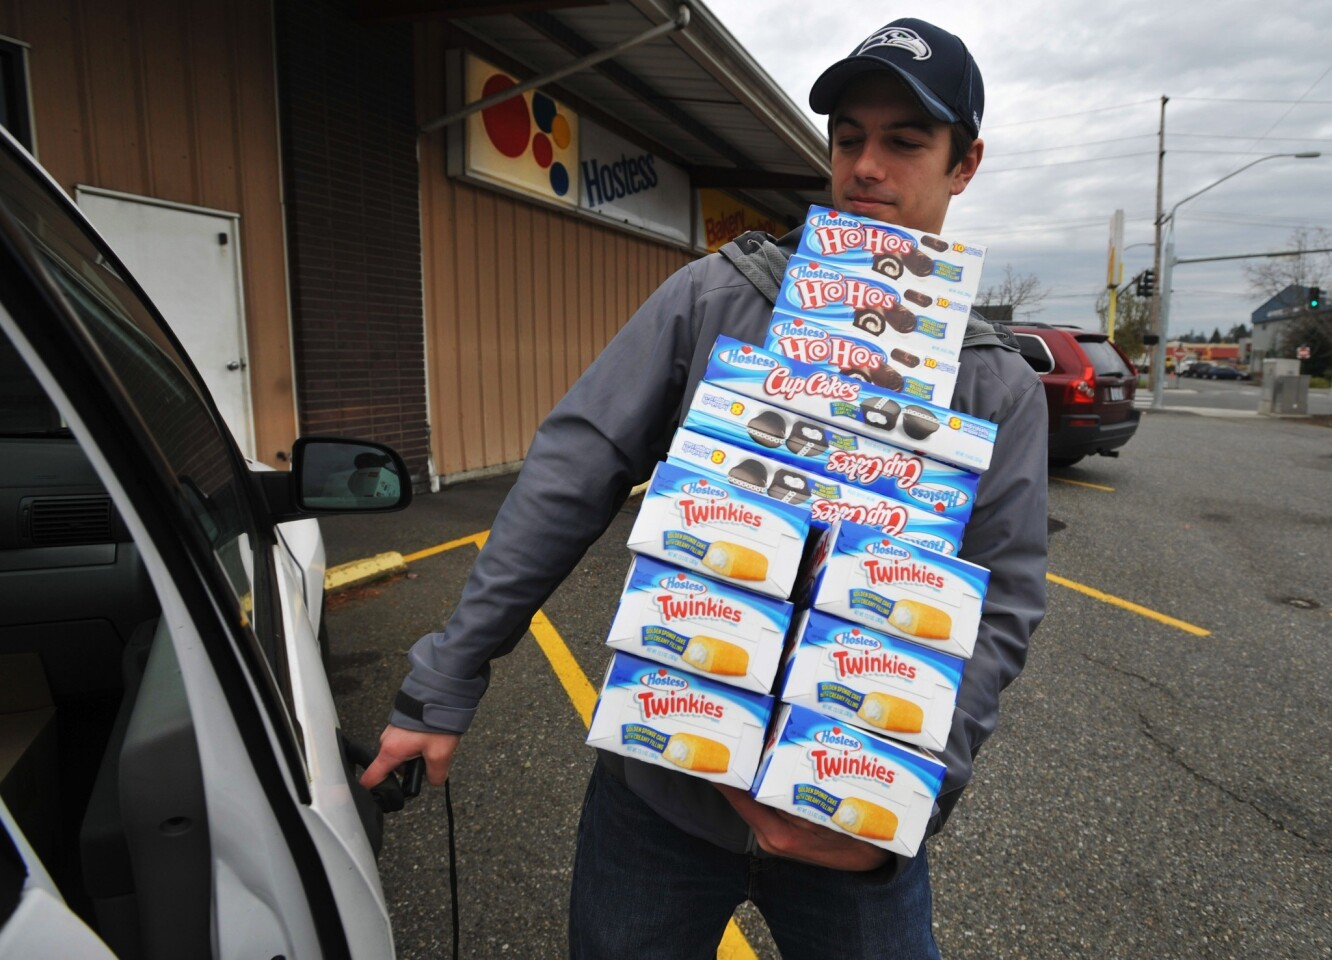 Andy Wagar loads Twinkies, Ho-Hos and Cup Cakes into a van outside the Wonder/Hostess Bakery Thrift Shop in Bellingham, Wash., after Hostess Brands Inc. said it would shut down.